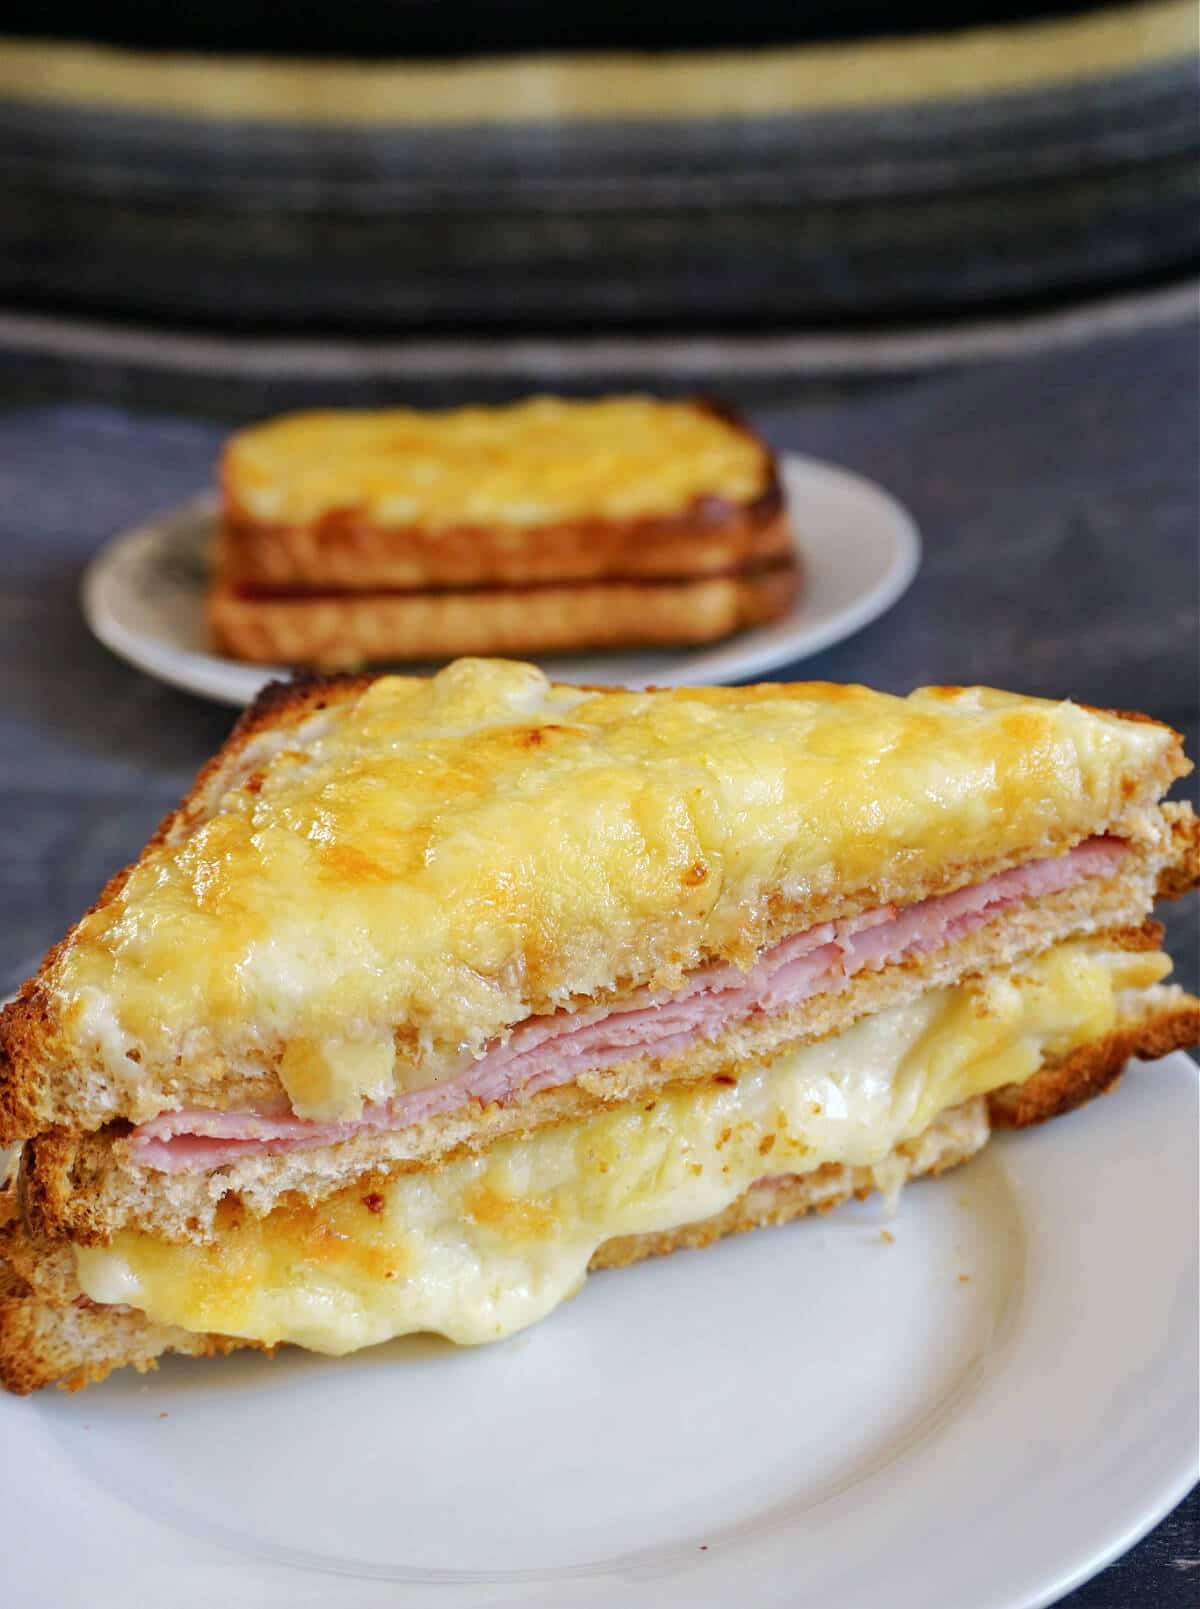 Half of a croque monsieur sandwich on a white plate with another plate with a whole sandwhich in the background